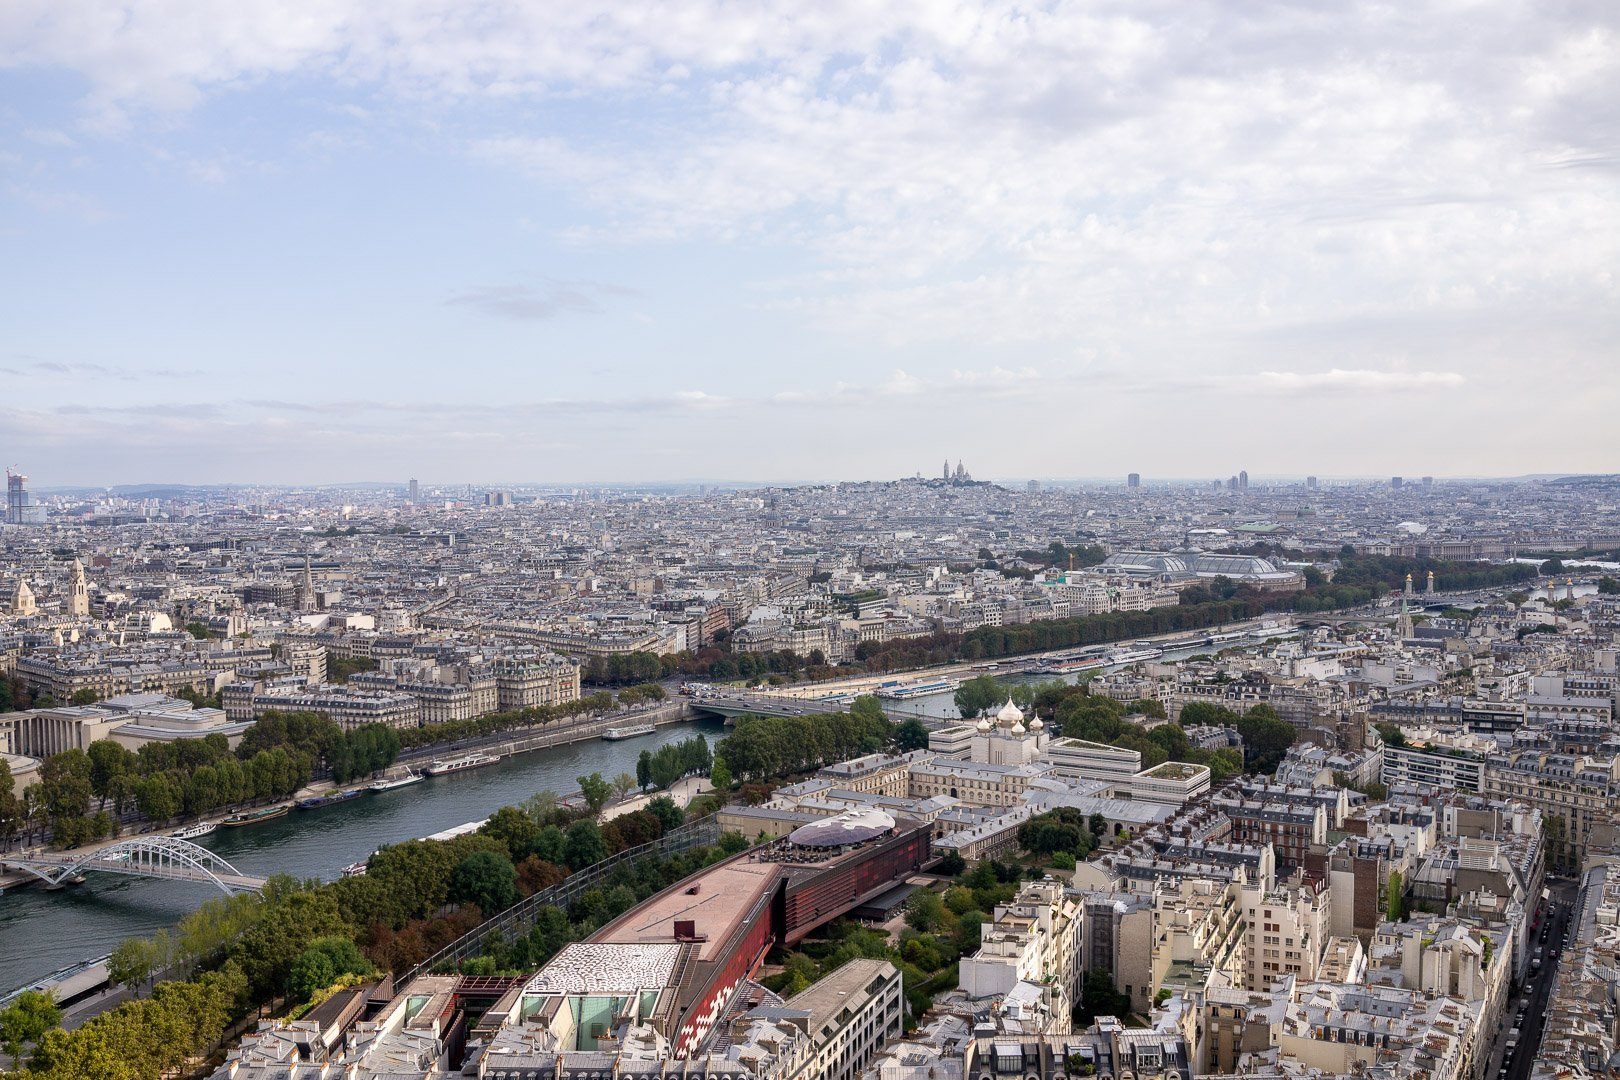 View of the Seine River in Paris France from the Eiffel Tower